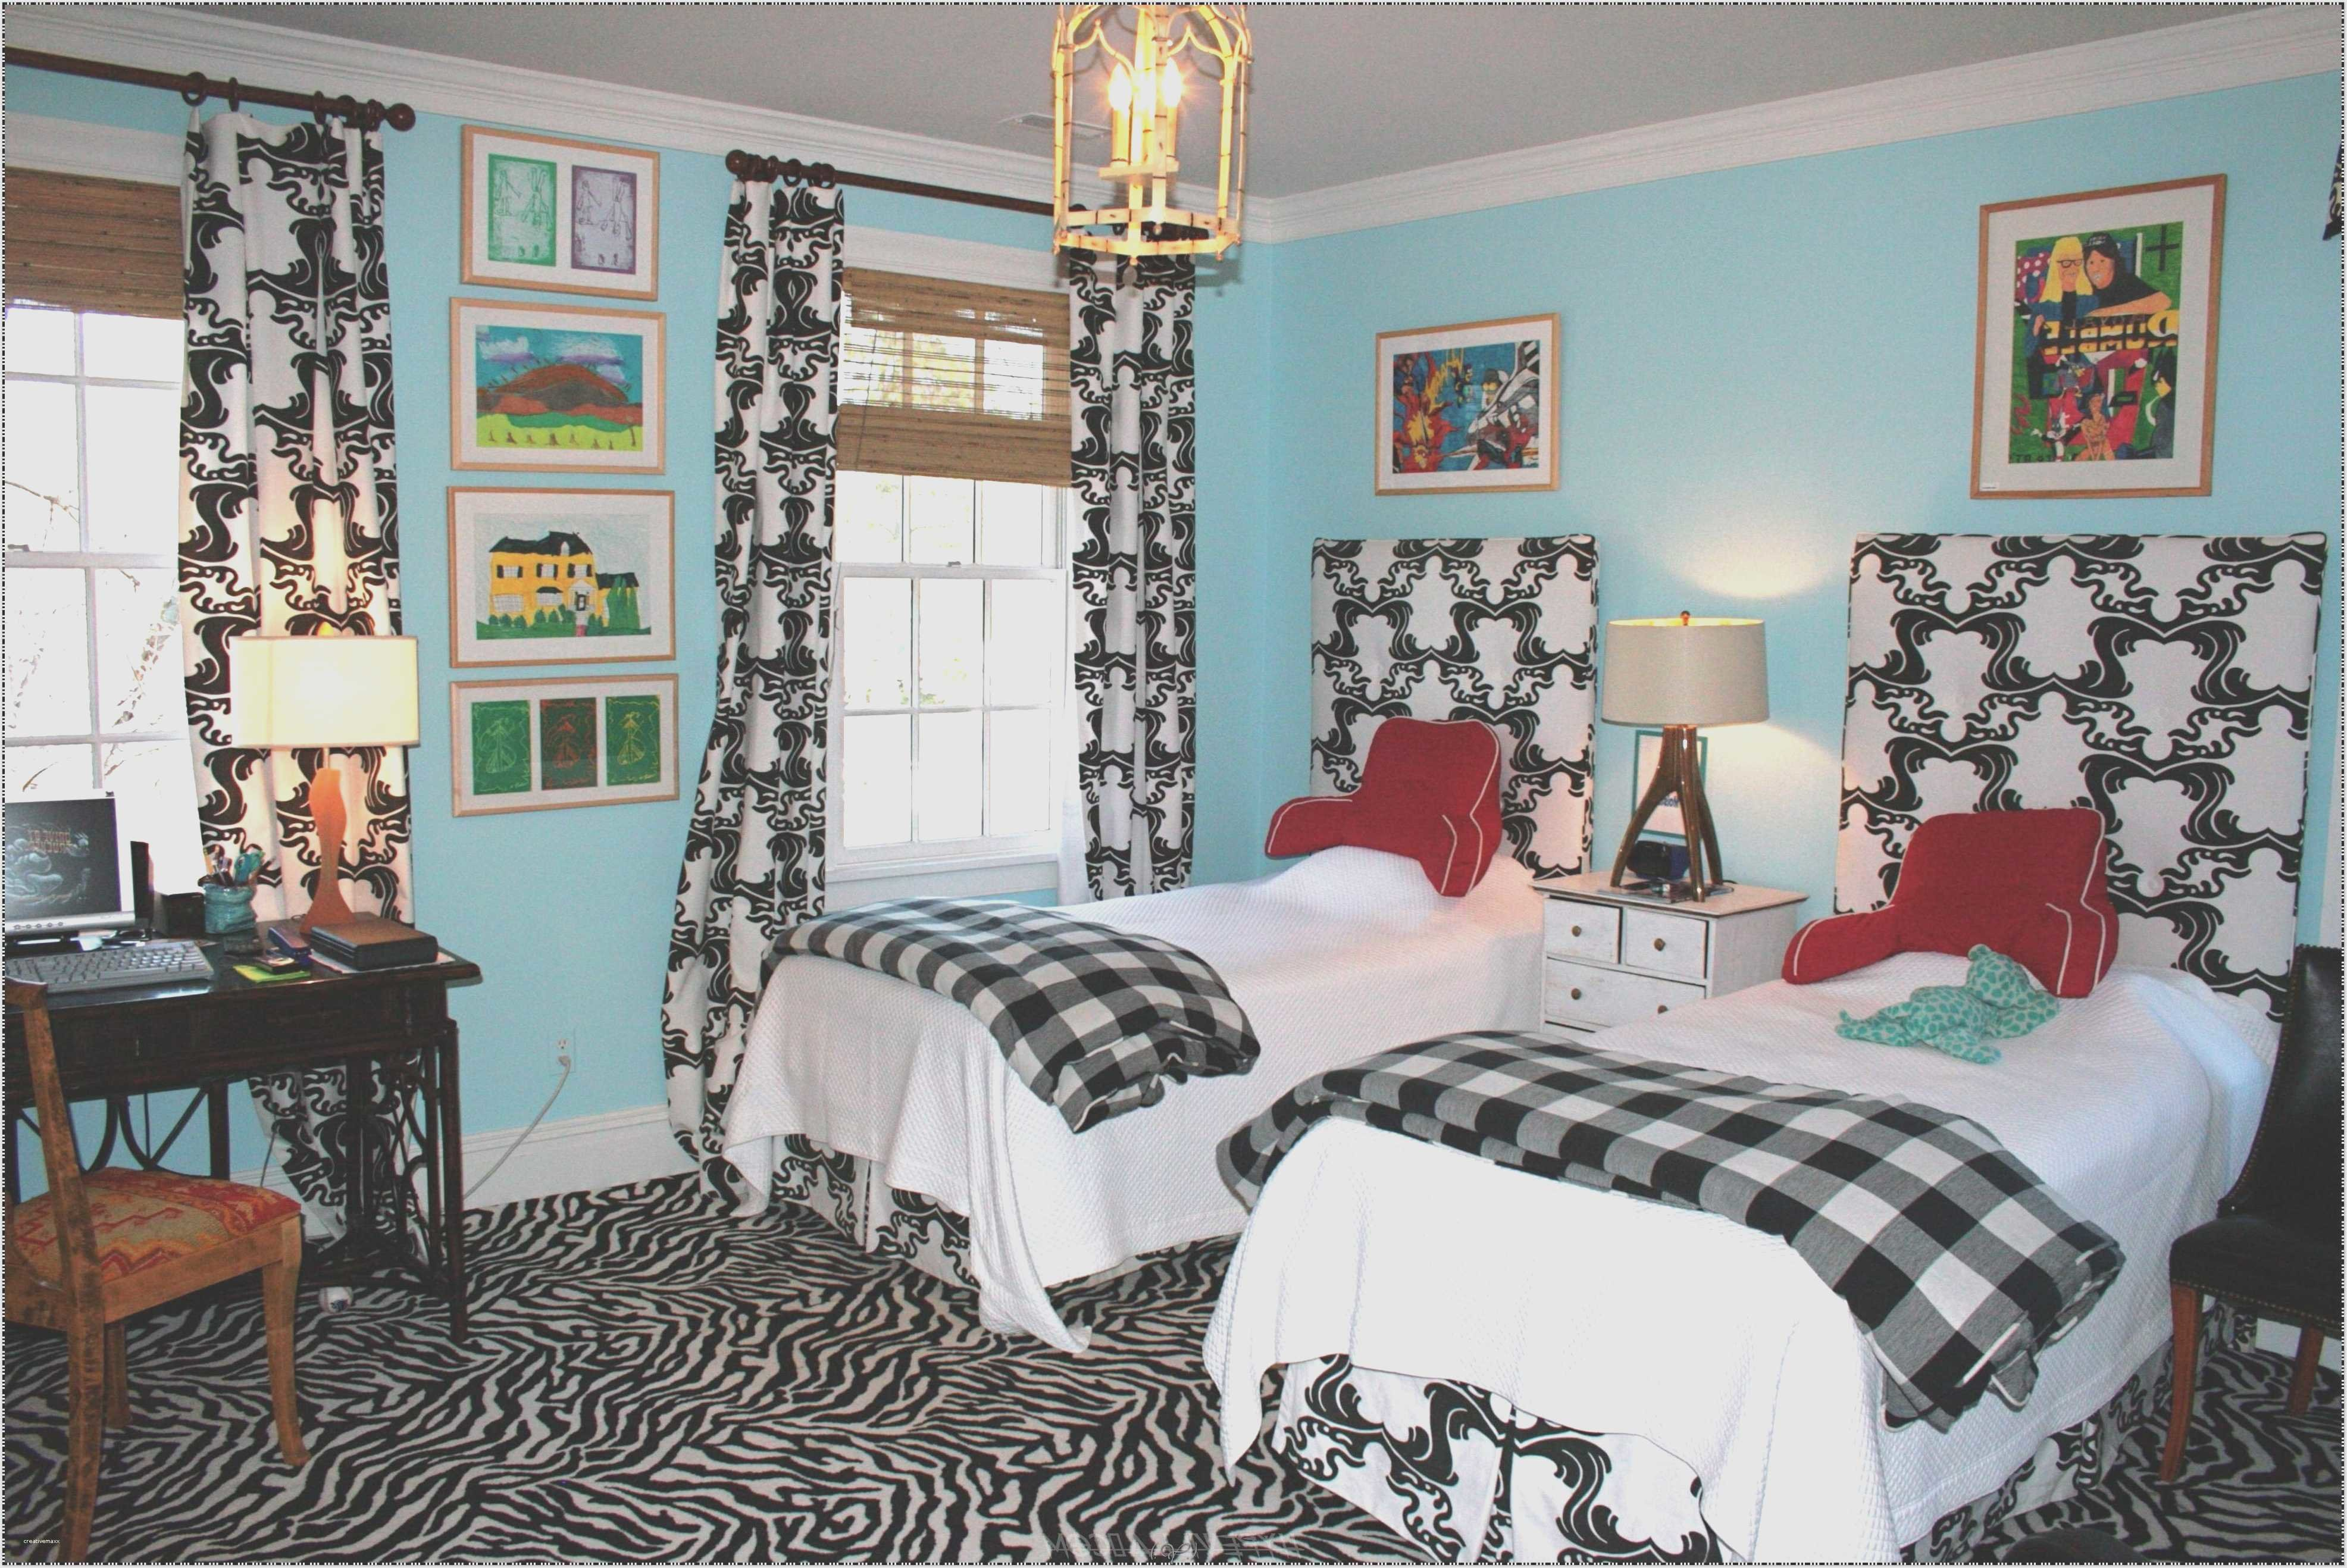 Best Bedroom Ideas For Teenage Girls Pinterest Fresh Bedroom Ideas Pinterest For Teenage Girls Tumblr With Pictures